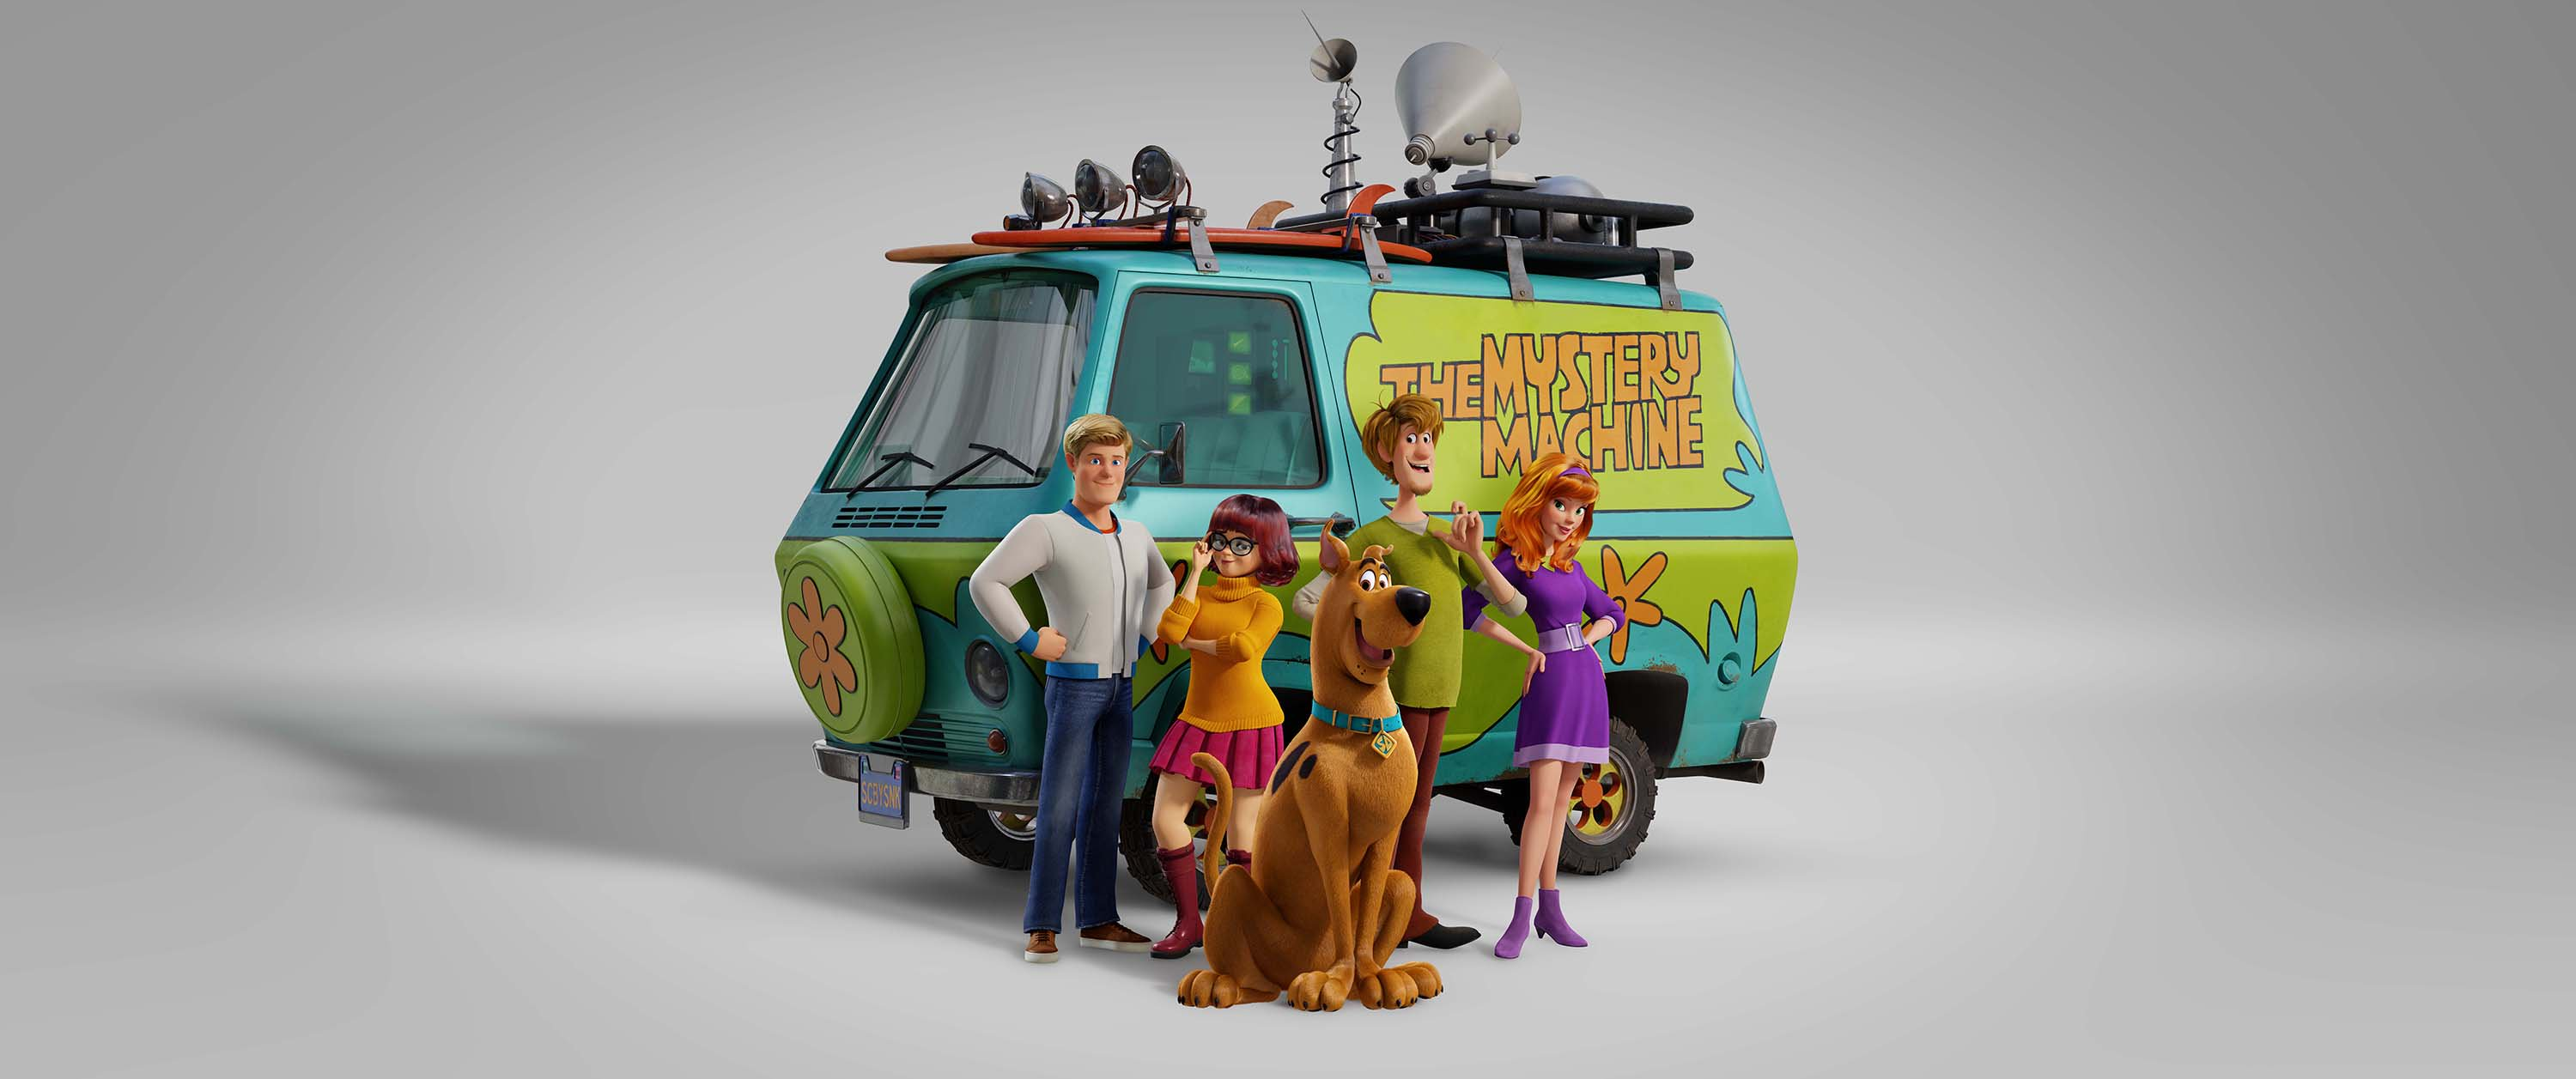 1 - The Reboot of Scooby-Doo in 3D is Coming! - Images, Trailer and Debut Details Revealed